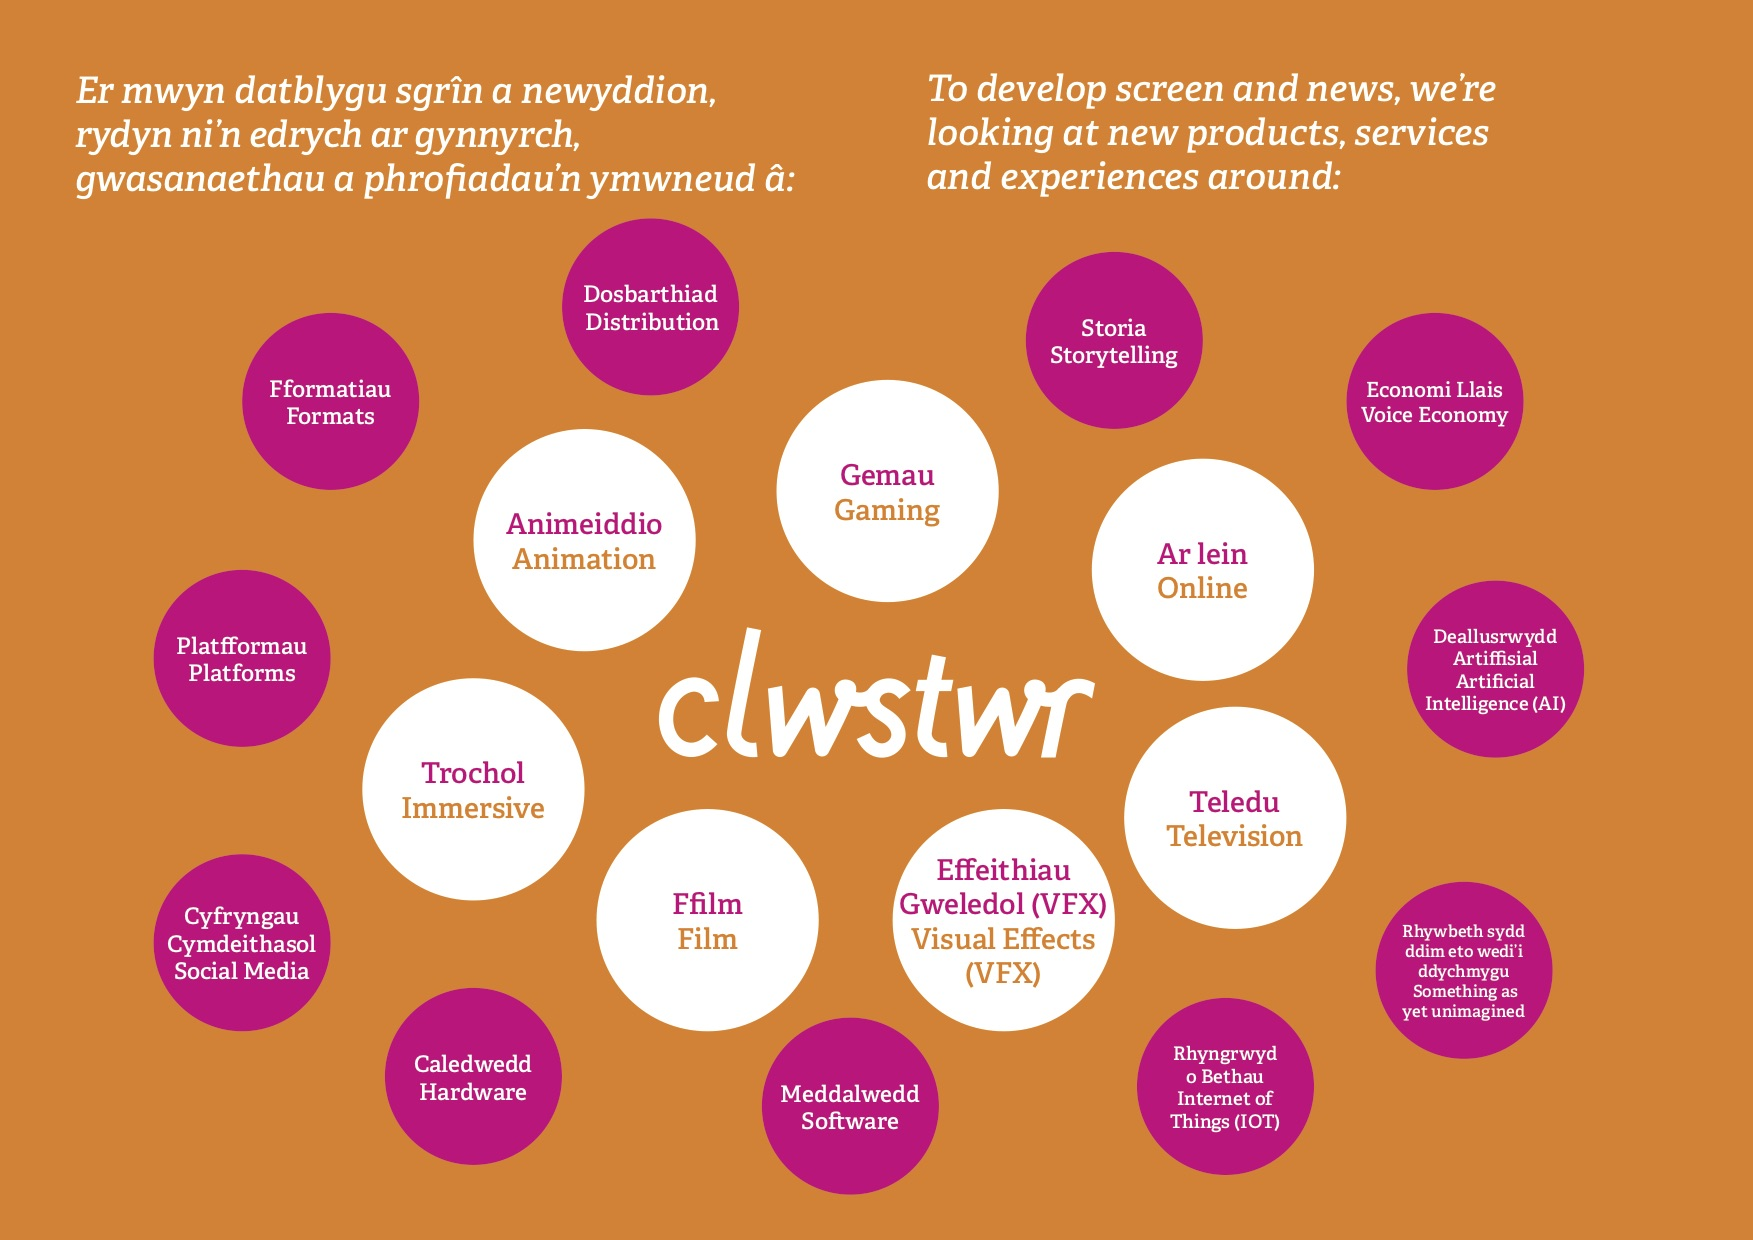 Clwstwr - where ideas thrive through